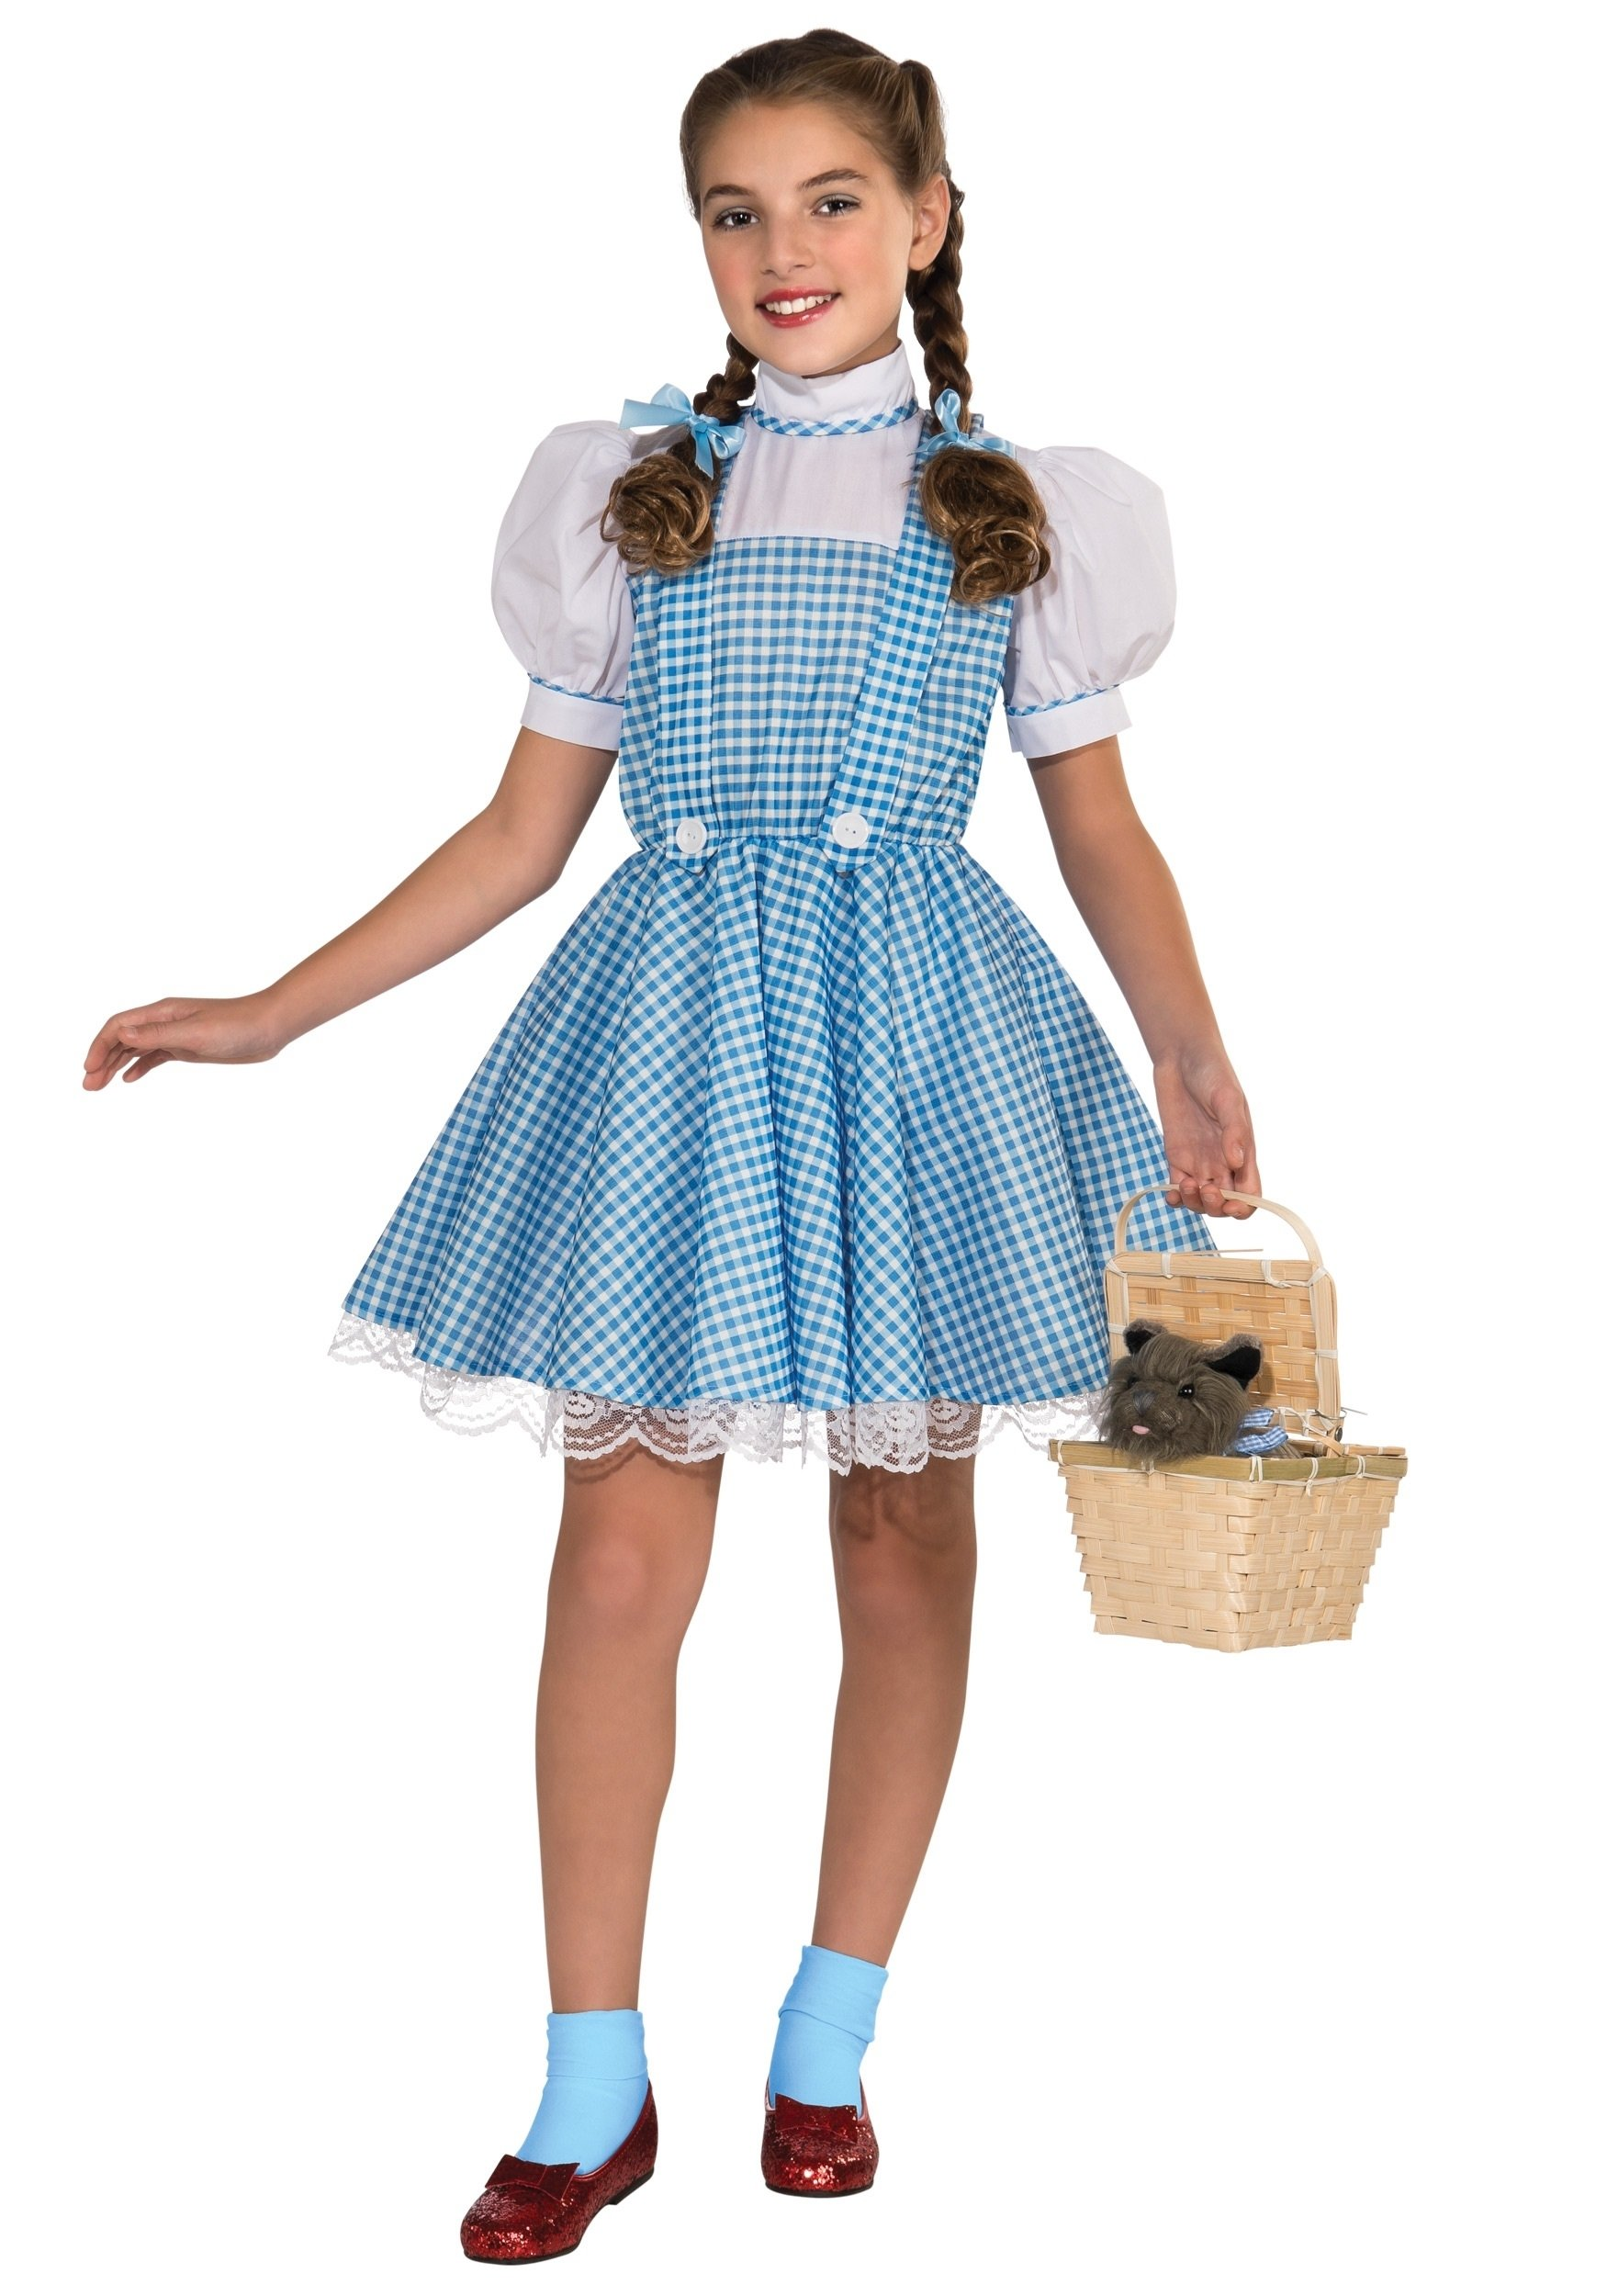 10 Unique Good Costume Ideas For Girls child deluxe dorothy costume 2020